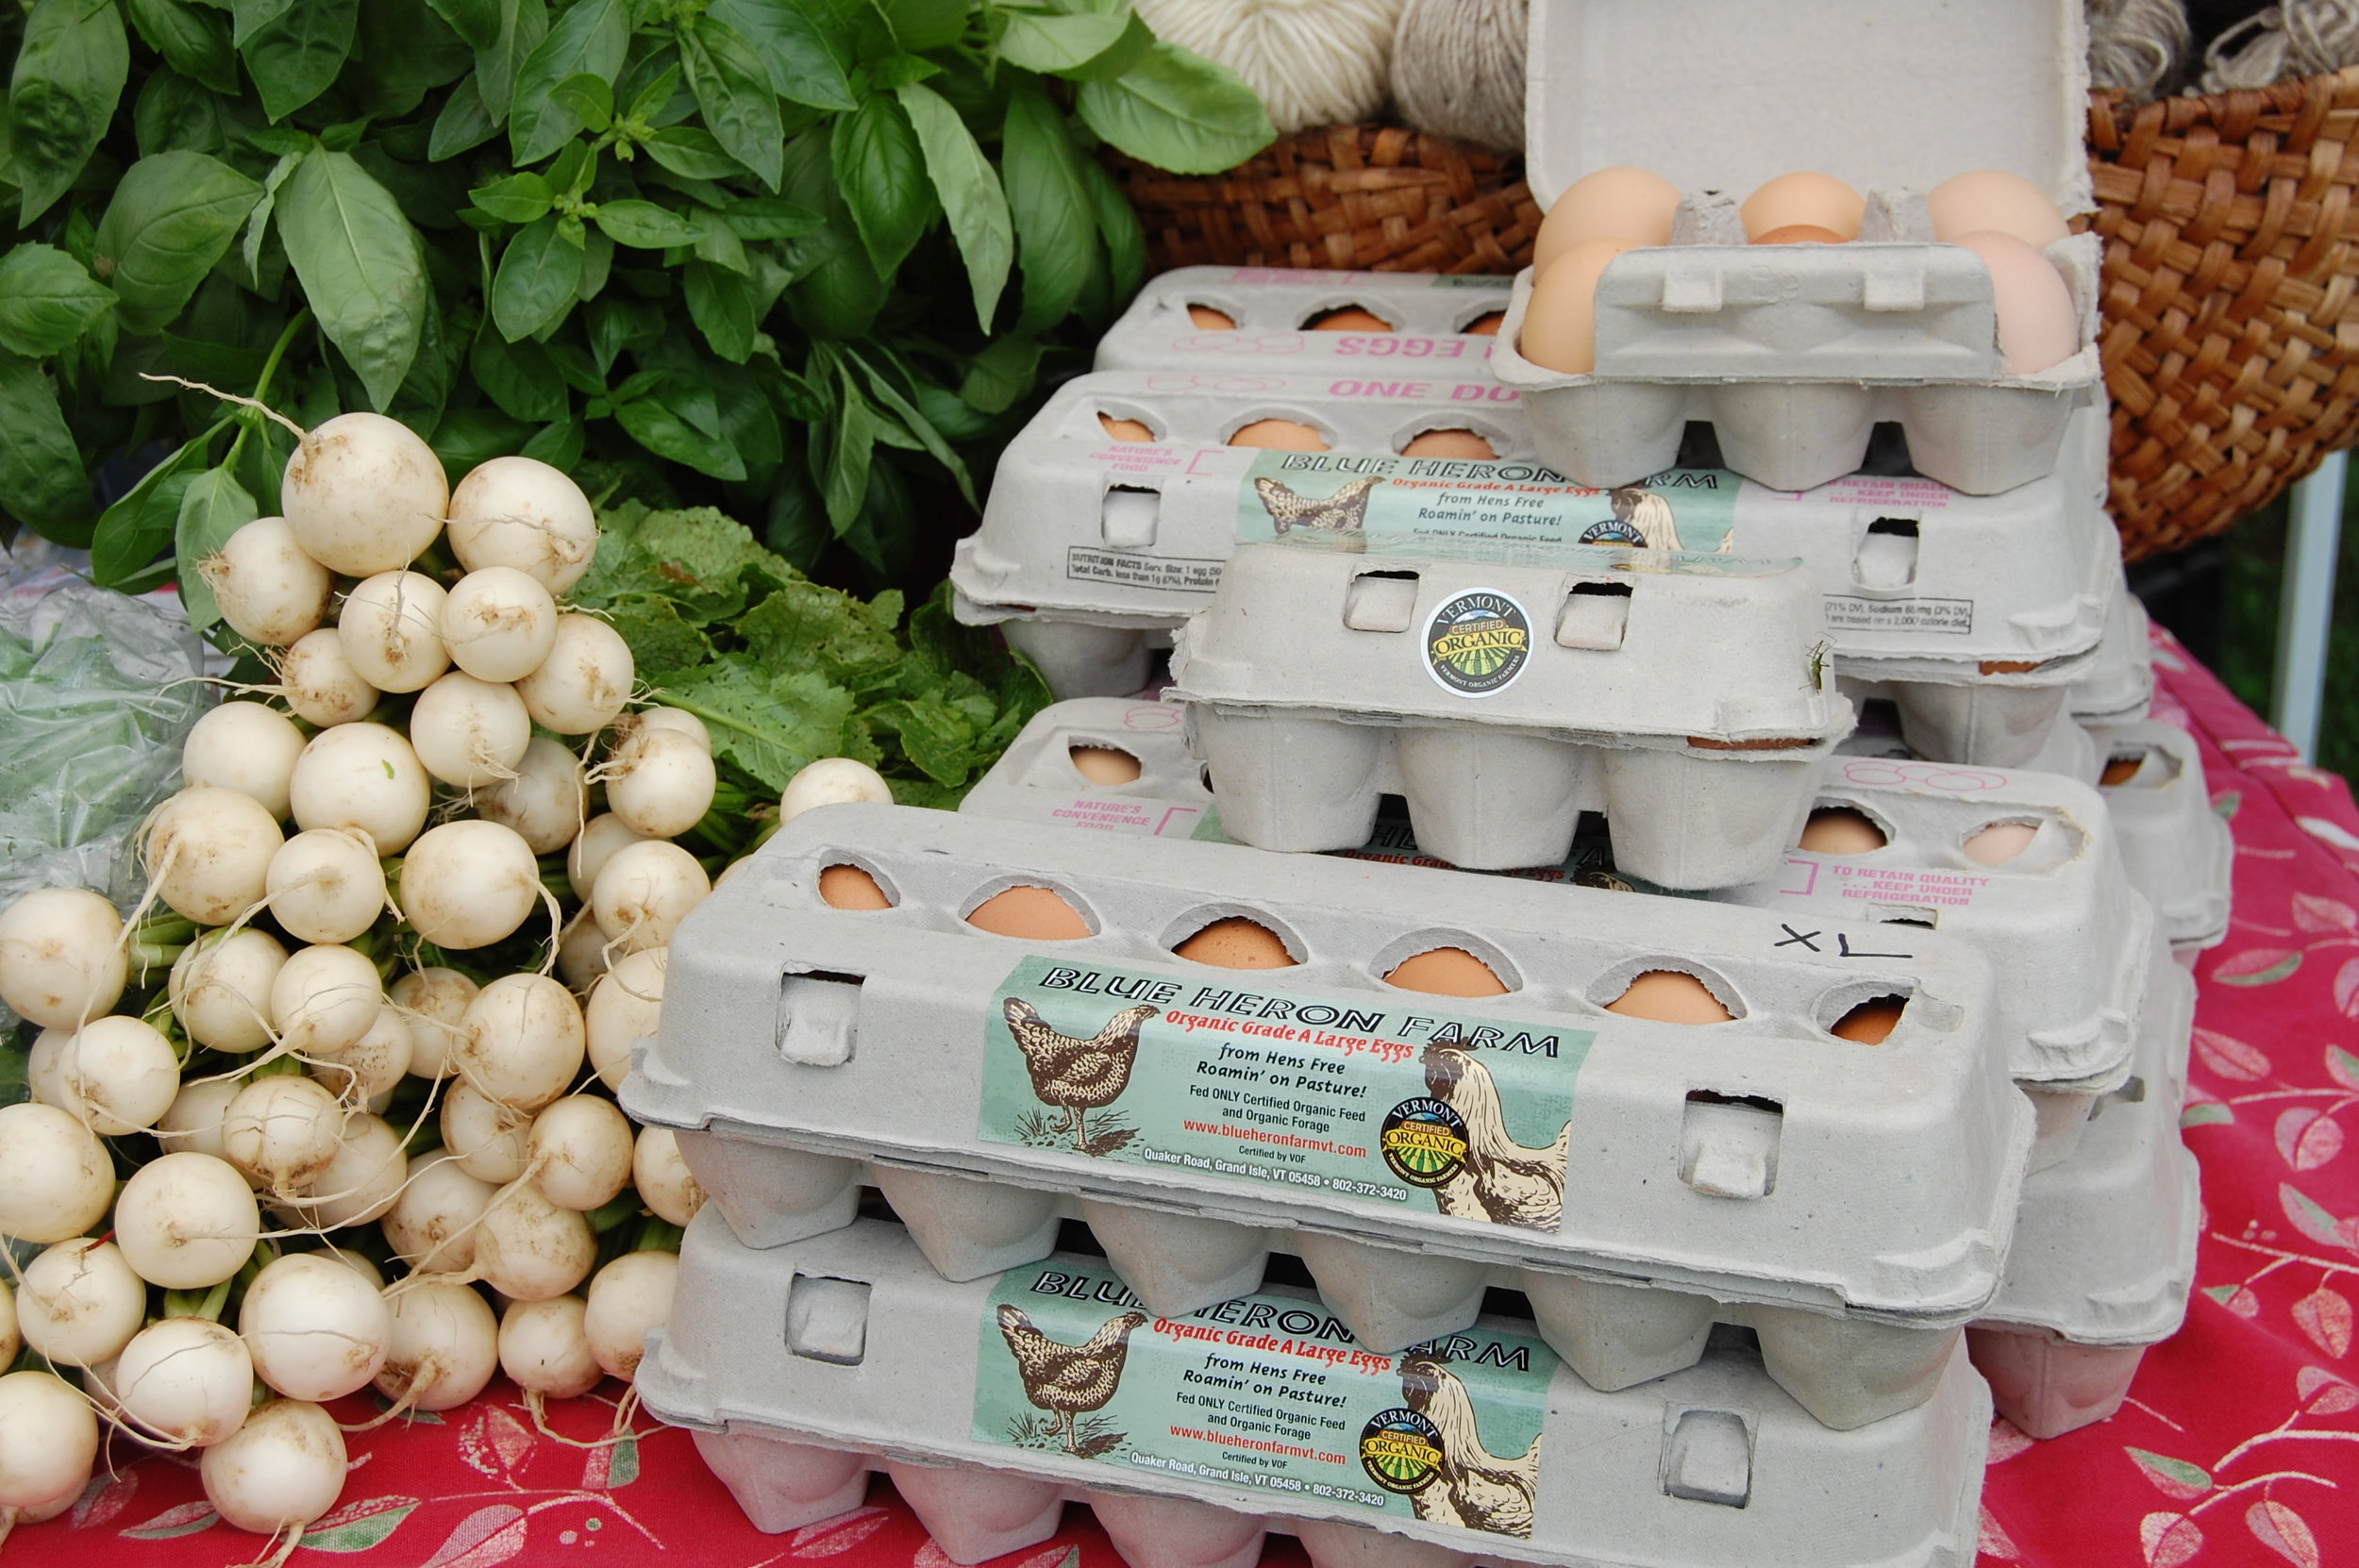 Eggs and sweet salad turnips from Blue Heron Farm